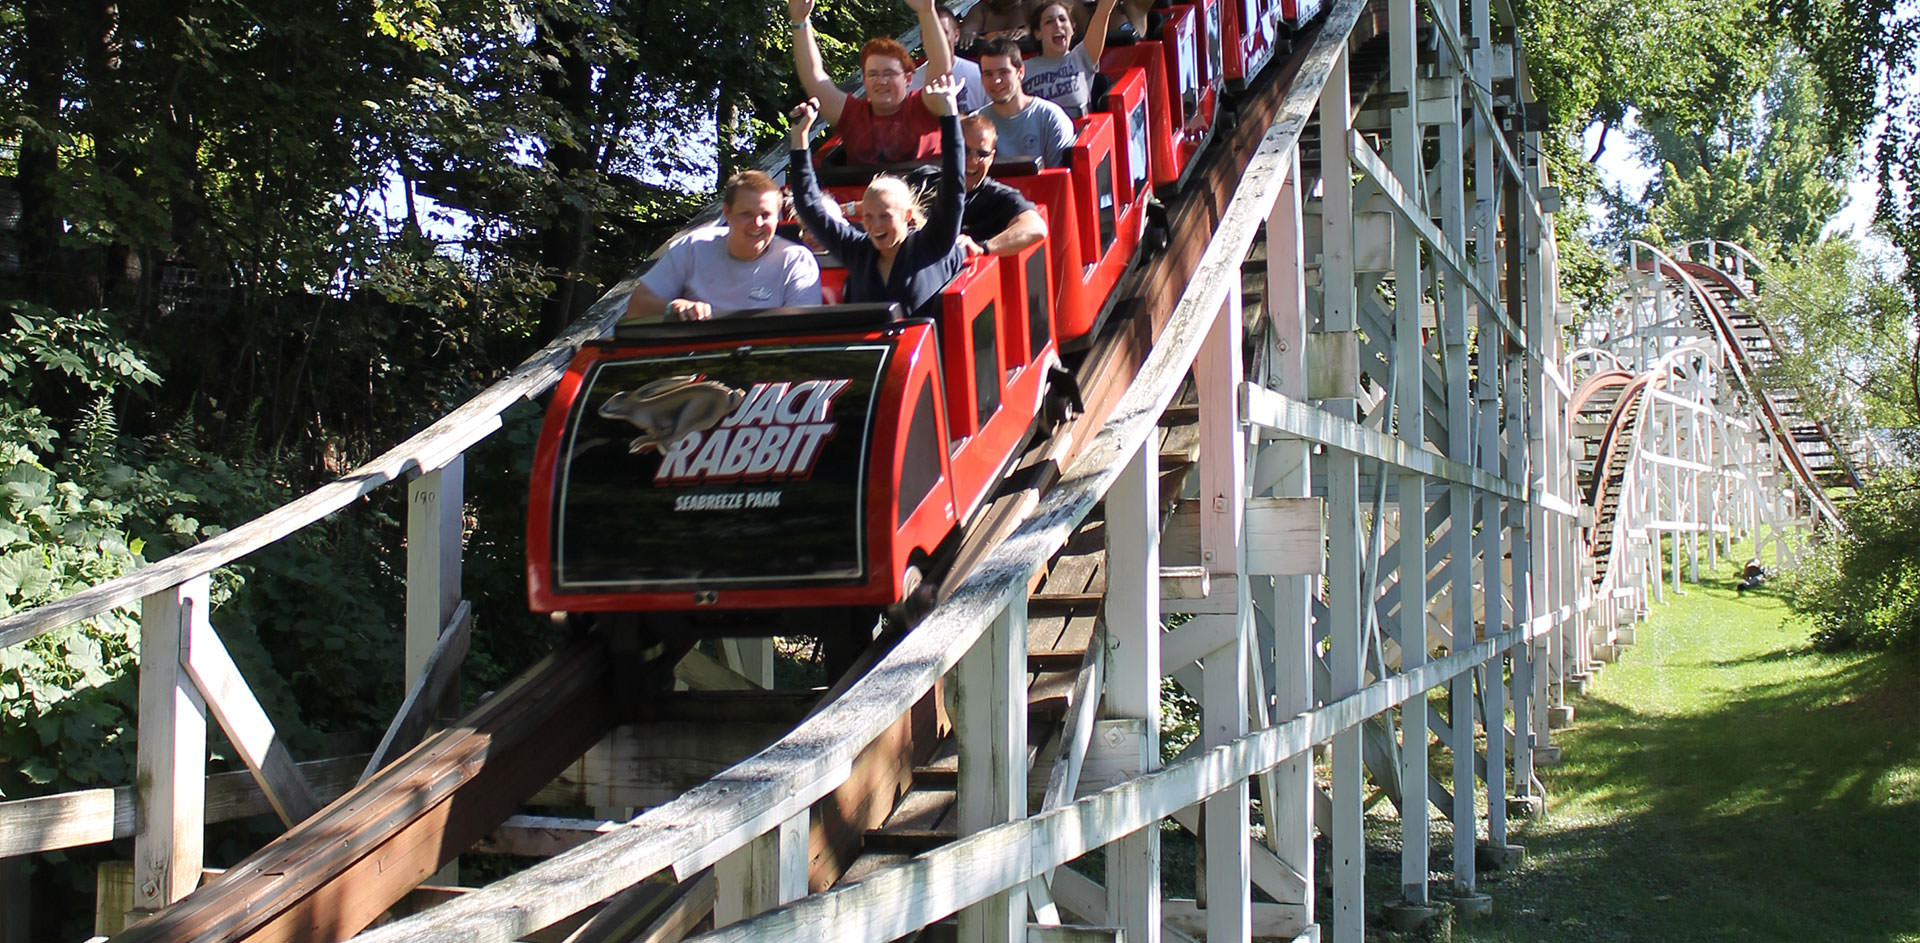 Riders come down a hill on the Jack Rabbit roller coaster ride.